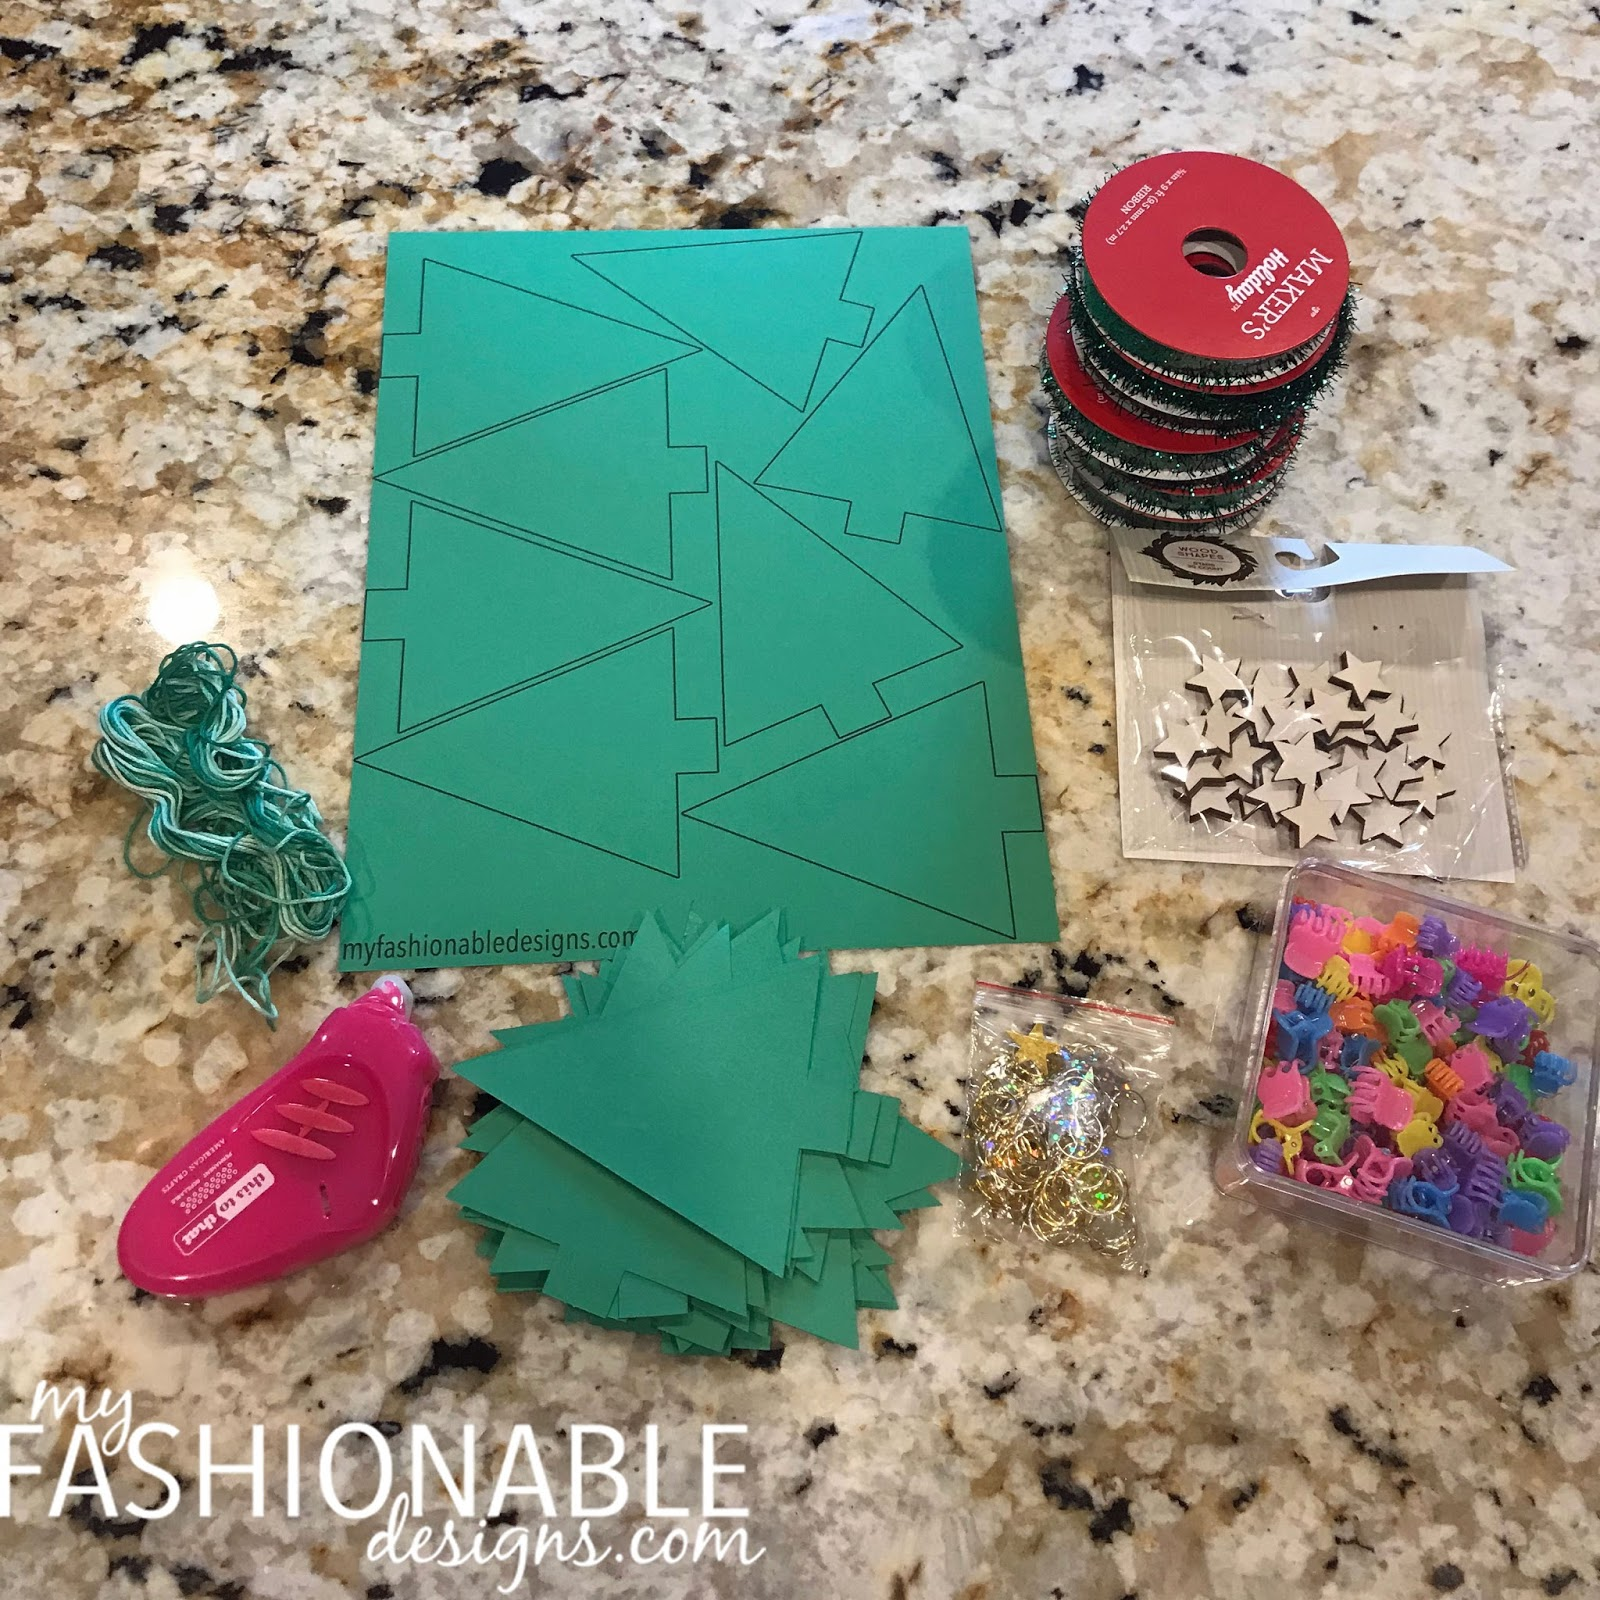 My Fashionable Designs Holiday Class Party Craft Idea